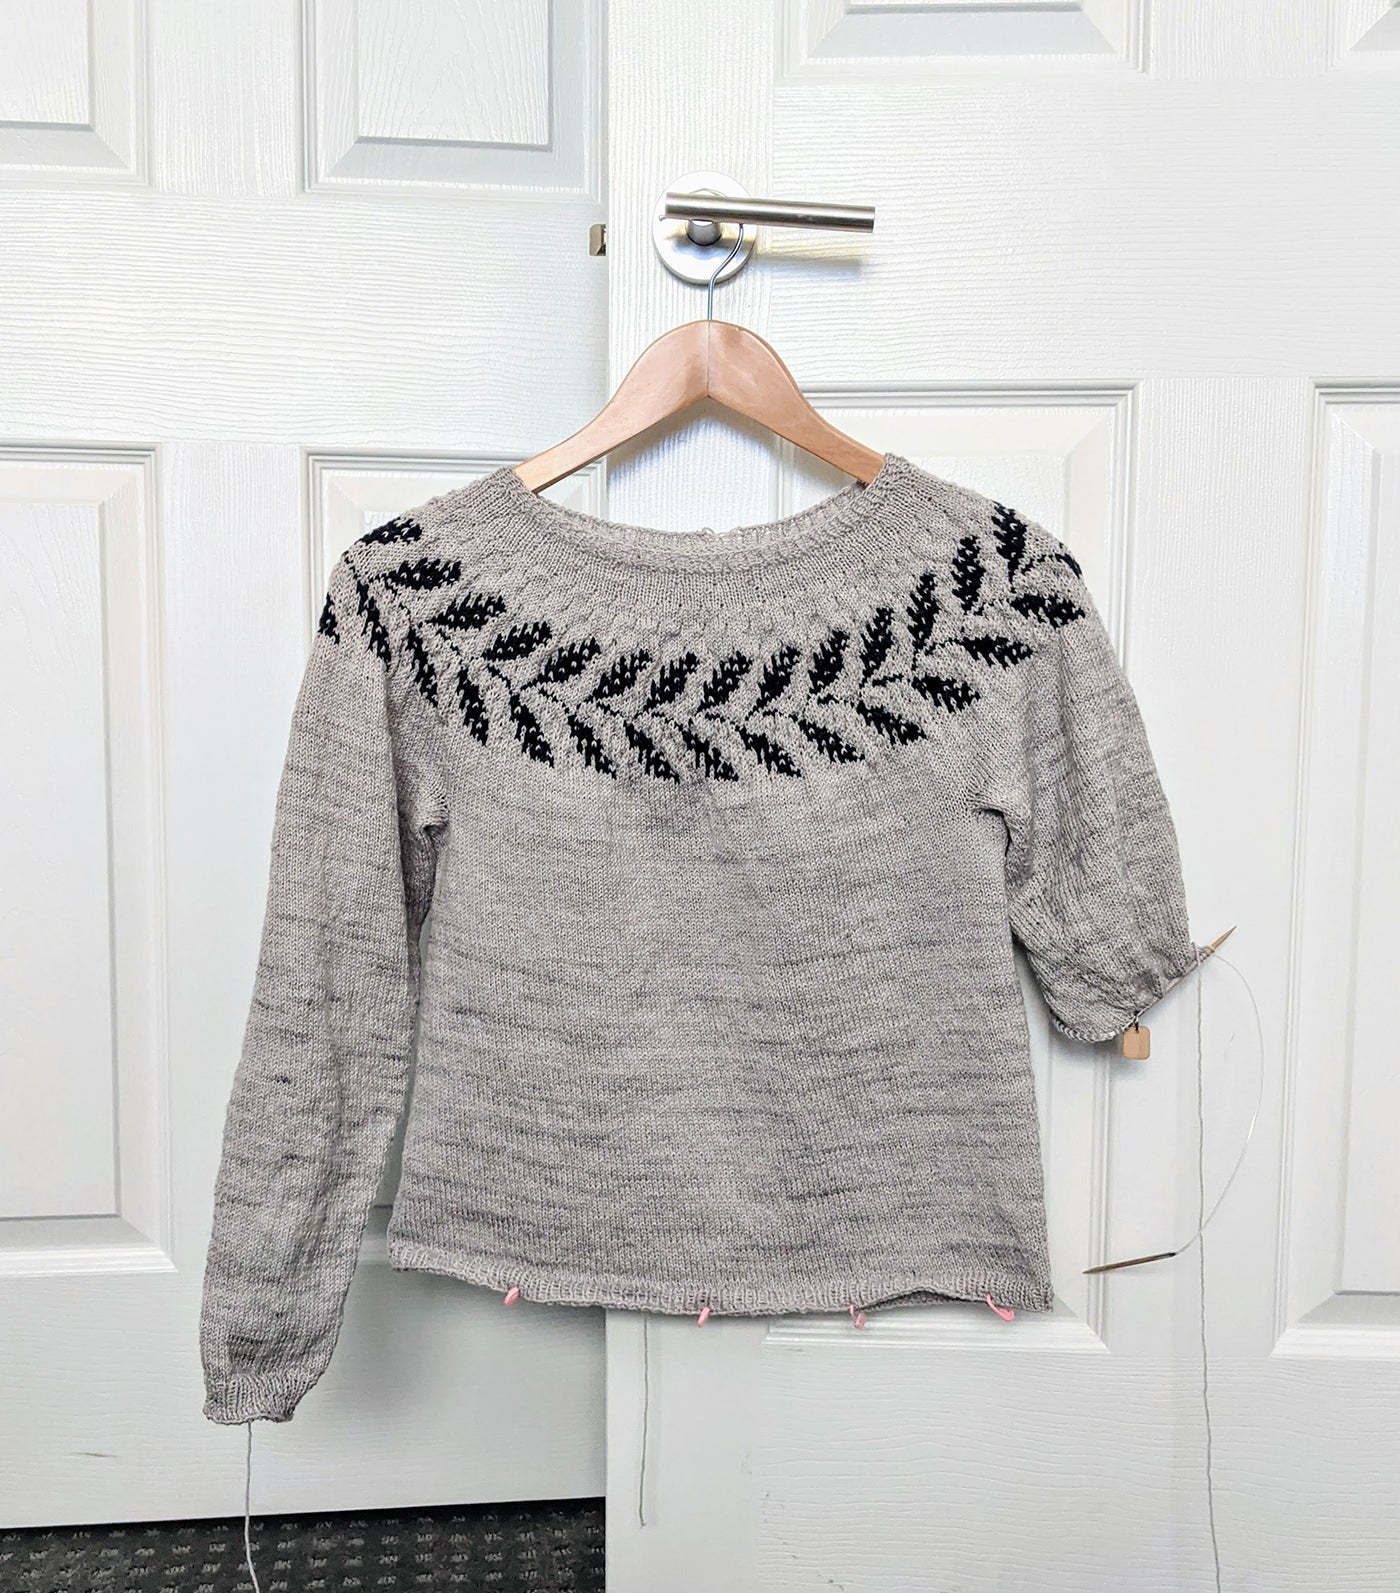 Image of a partially finished sweater hanging on a hook